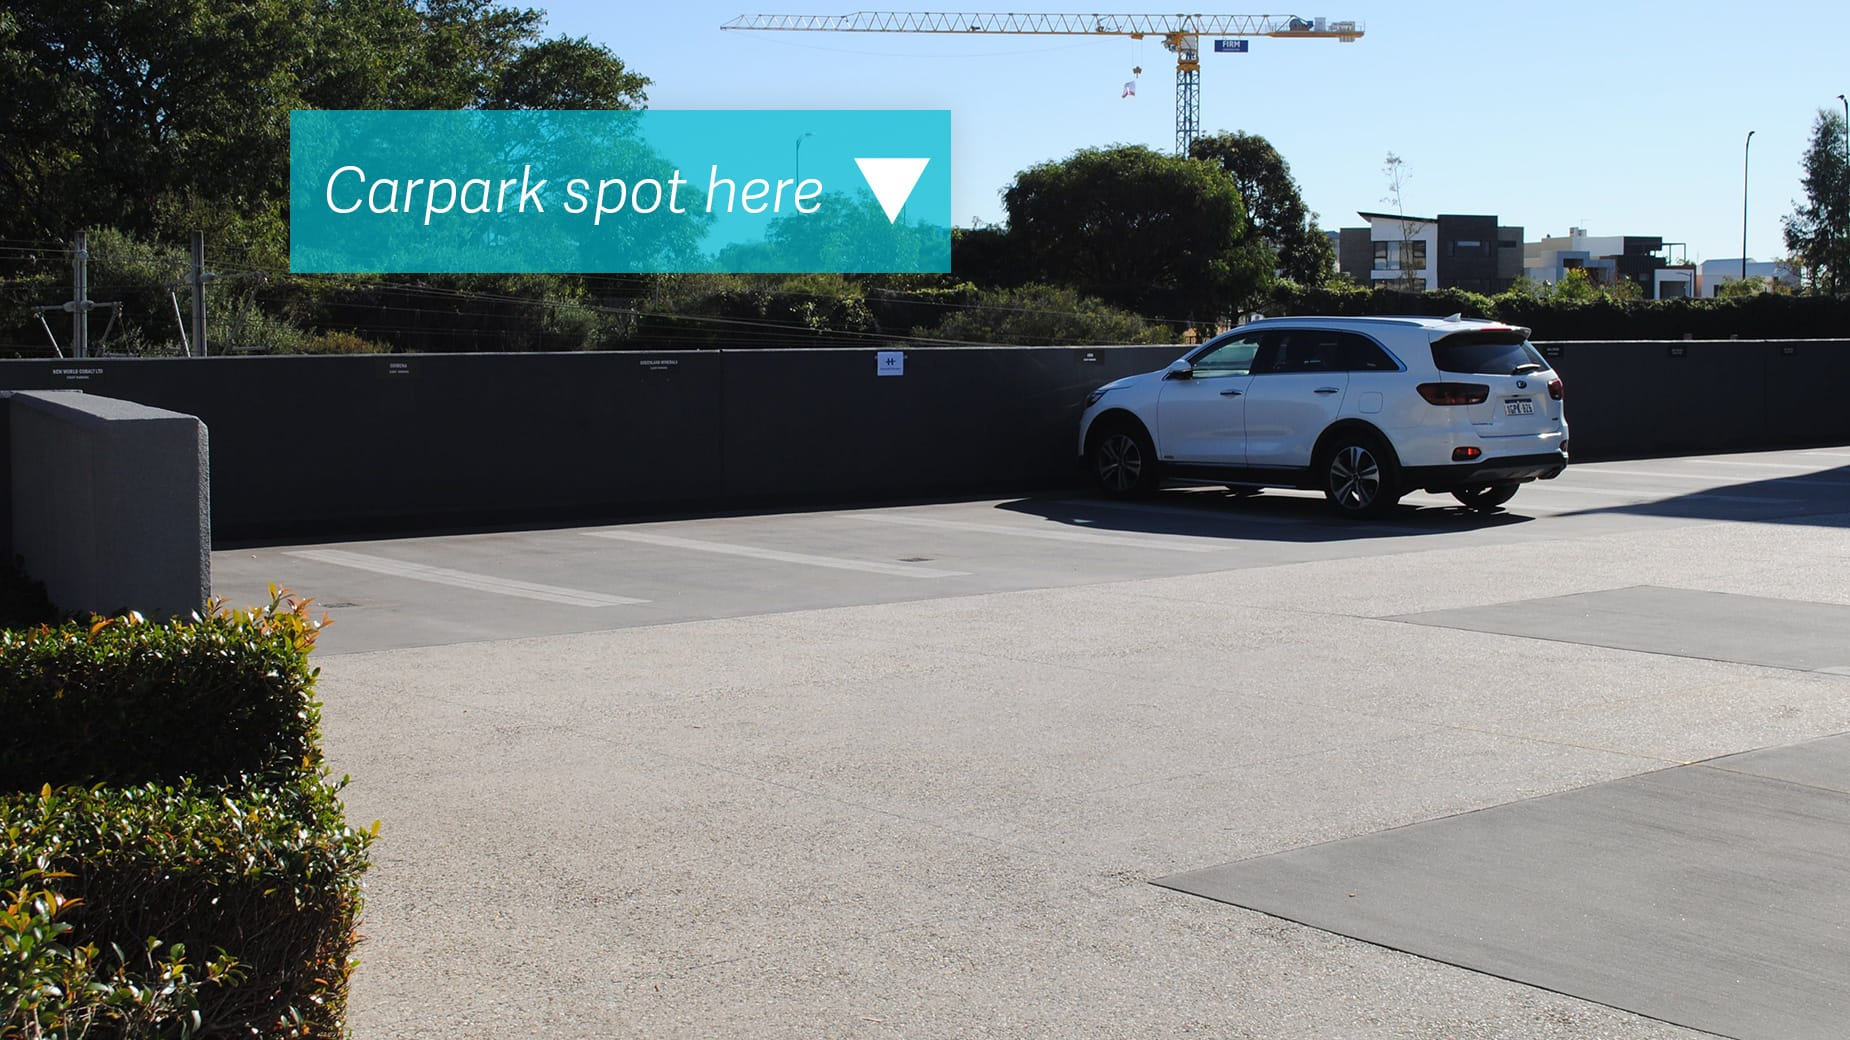 carpark-spot-here